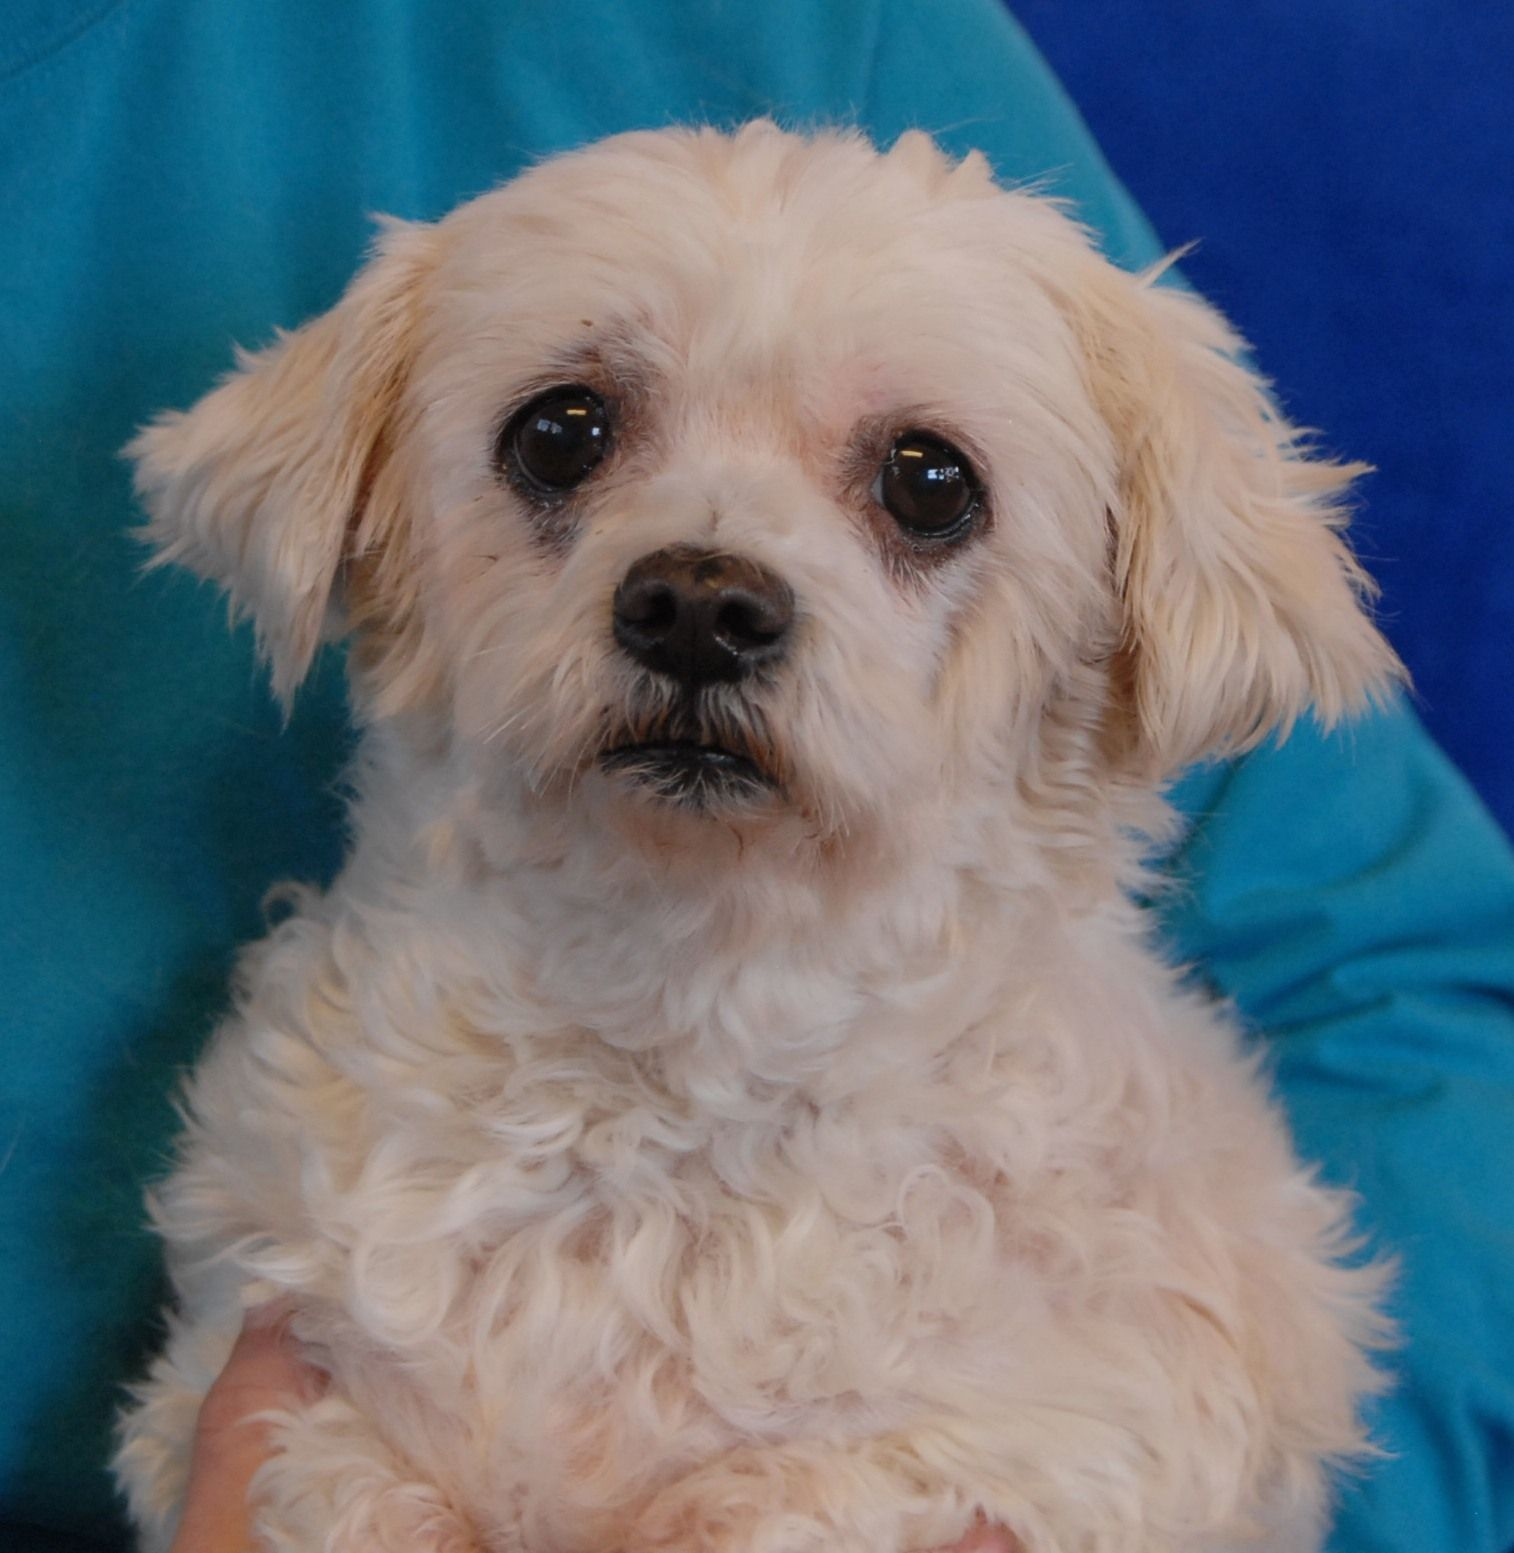 Susie's previous owner died and she had nowhere to go.  She is understandably confused and depressed, though volunteers and staff are comforting her and reassuring her that she is safe and will find love again.  Susie is a Malti-Poo (Maltese & Poodle mix), spayed girl, about 6 years of age, debuting for adoption today at Christmas Eve at Nevada SPCA (www.nevadaspca.org).  Susie is good with other dogs and reportedly housetrained.  Please visit and ask for her by name.